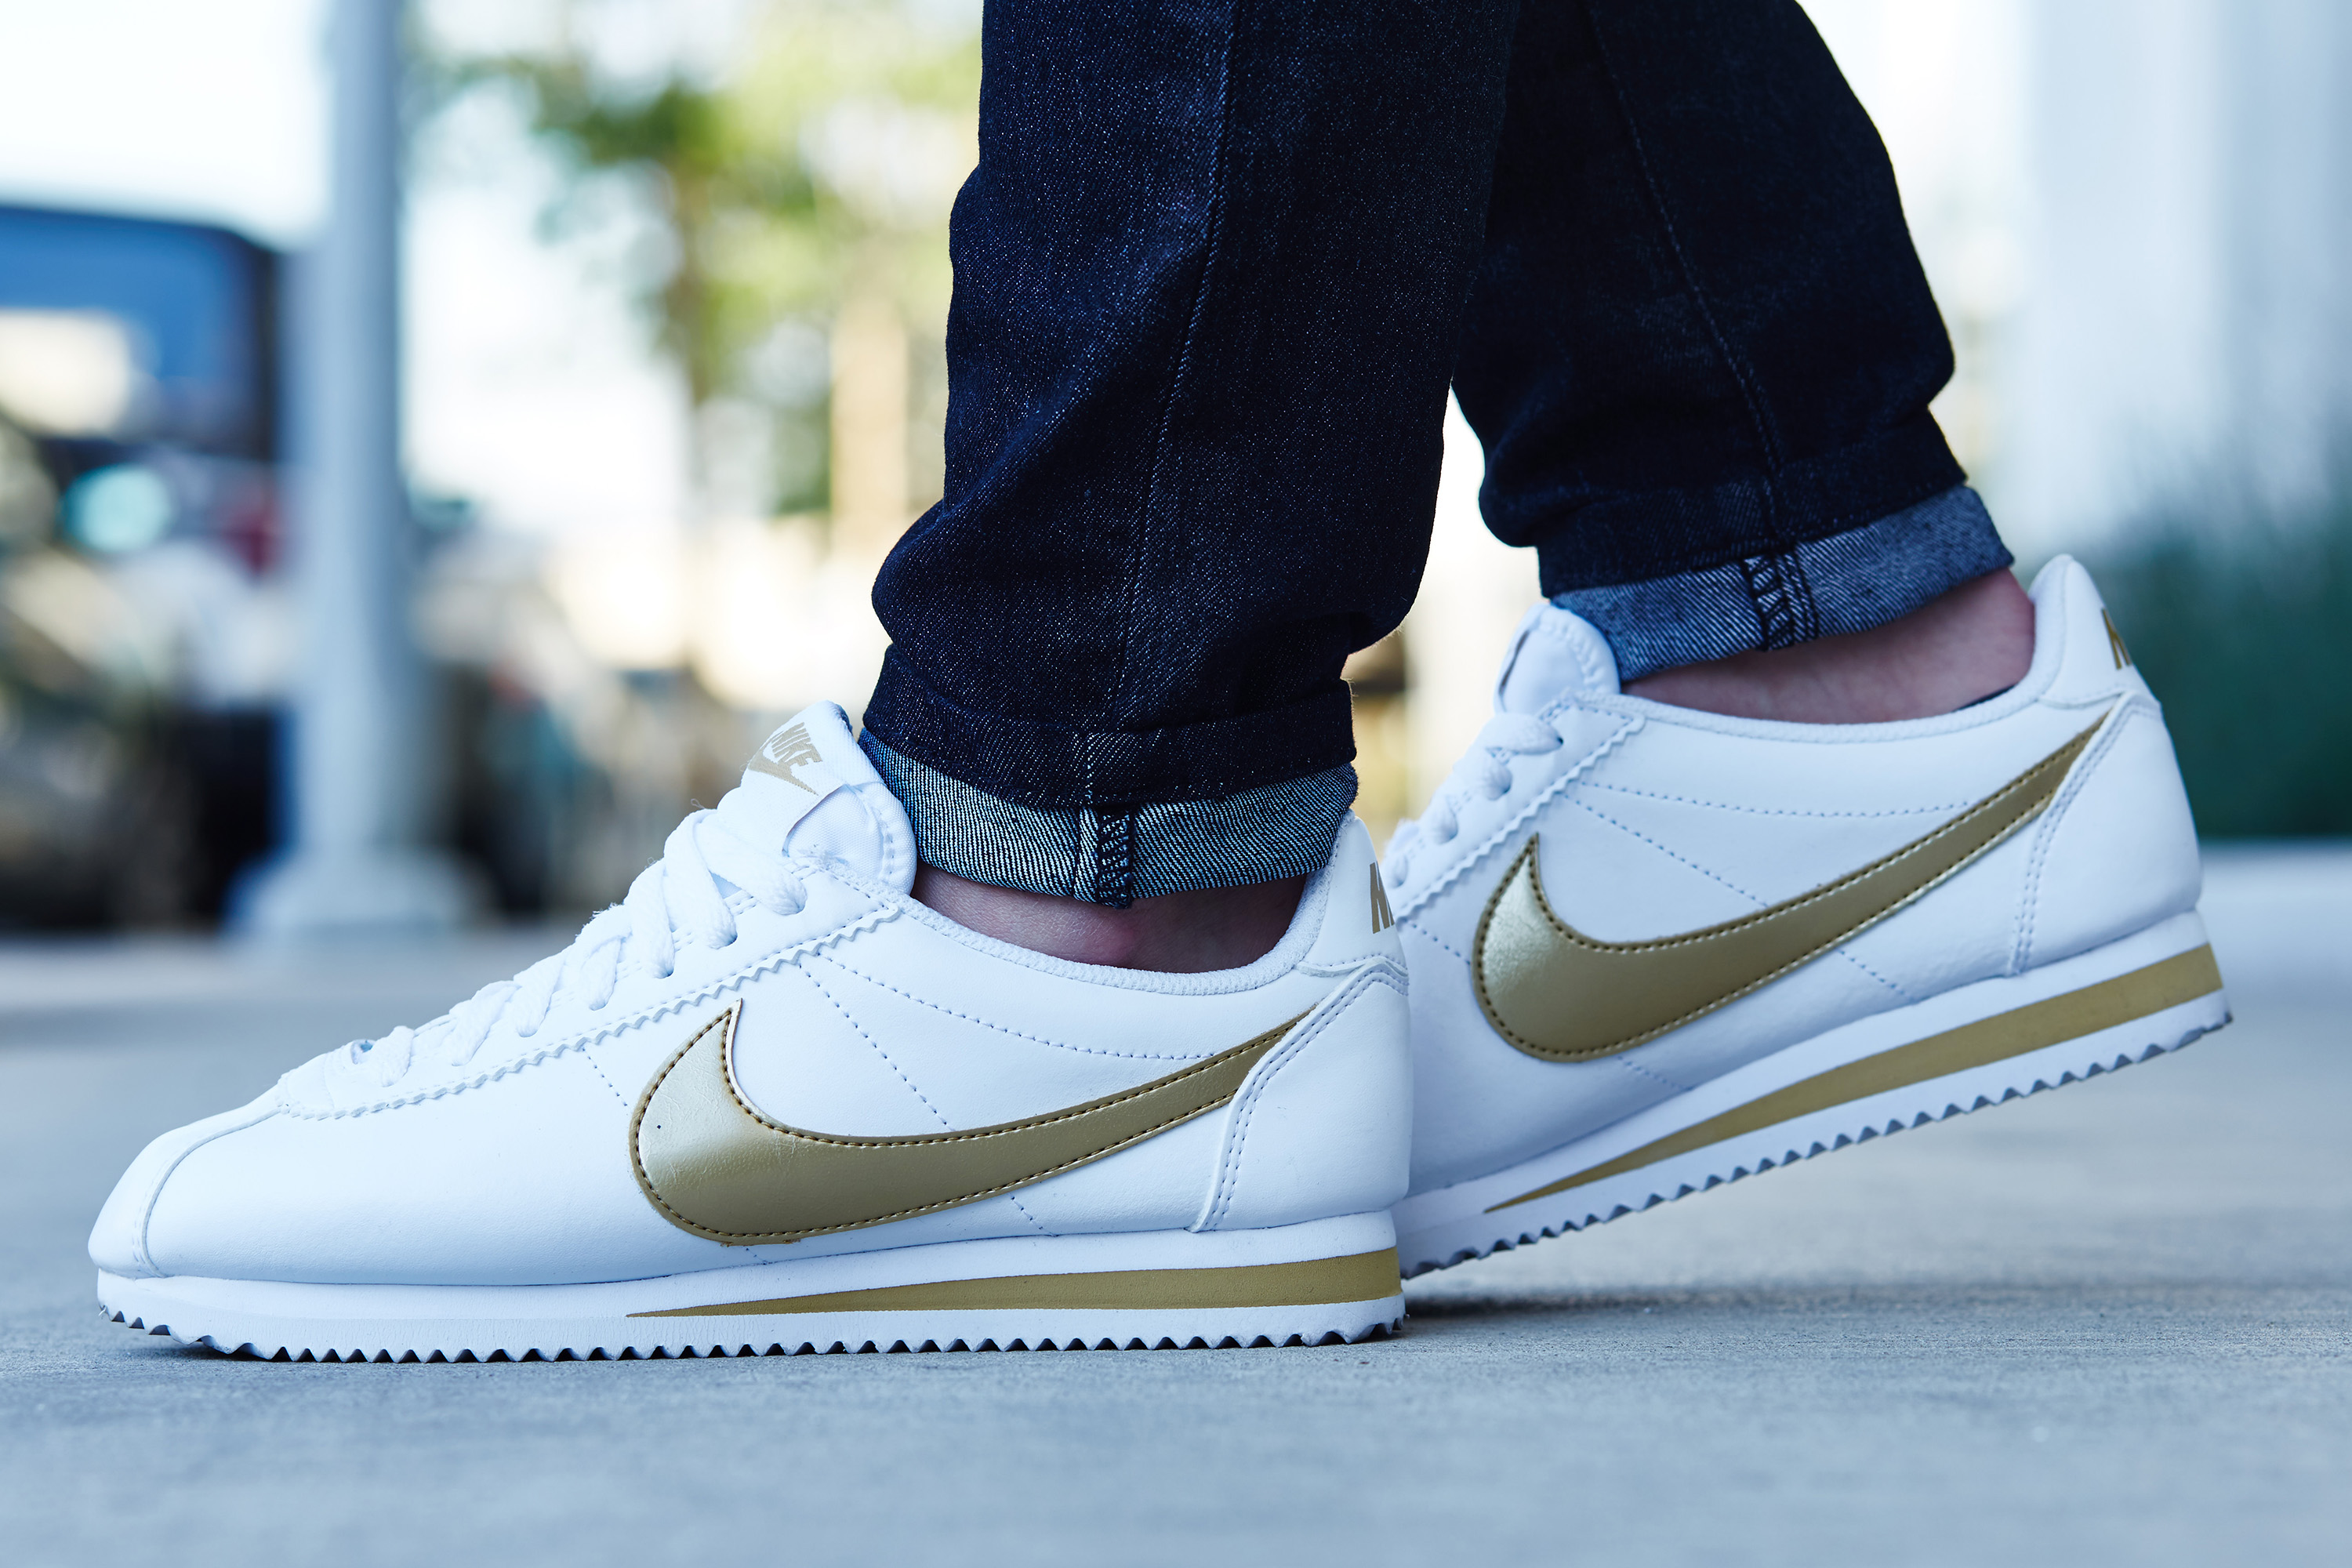 official photos 37d5b 3a6c9 inexpensive nike cortez femme or 5ce7b ff518  switzerland nike cortez  blanche or 39375 55d2c